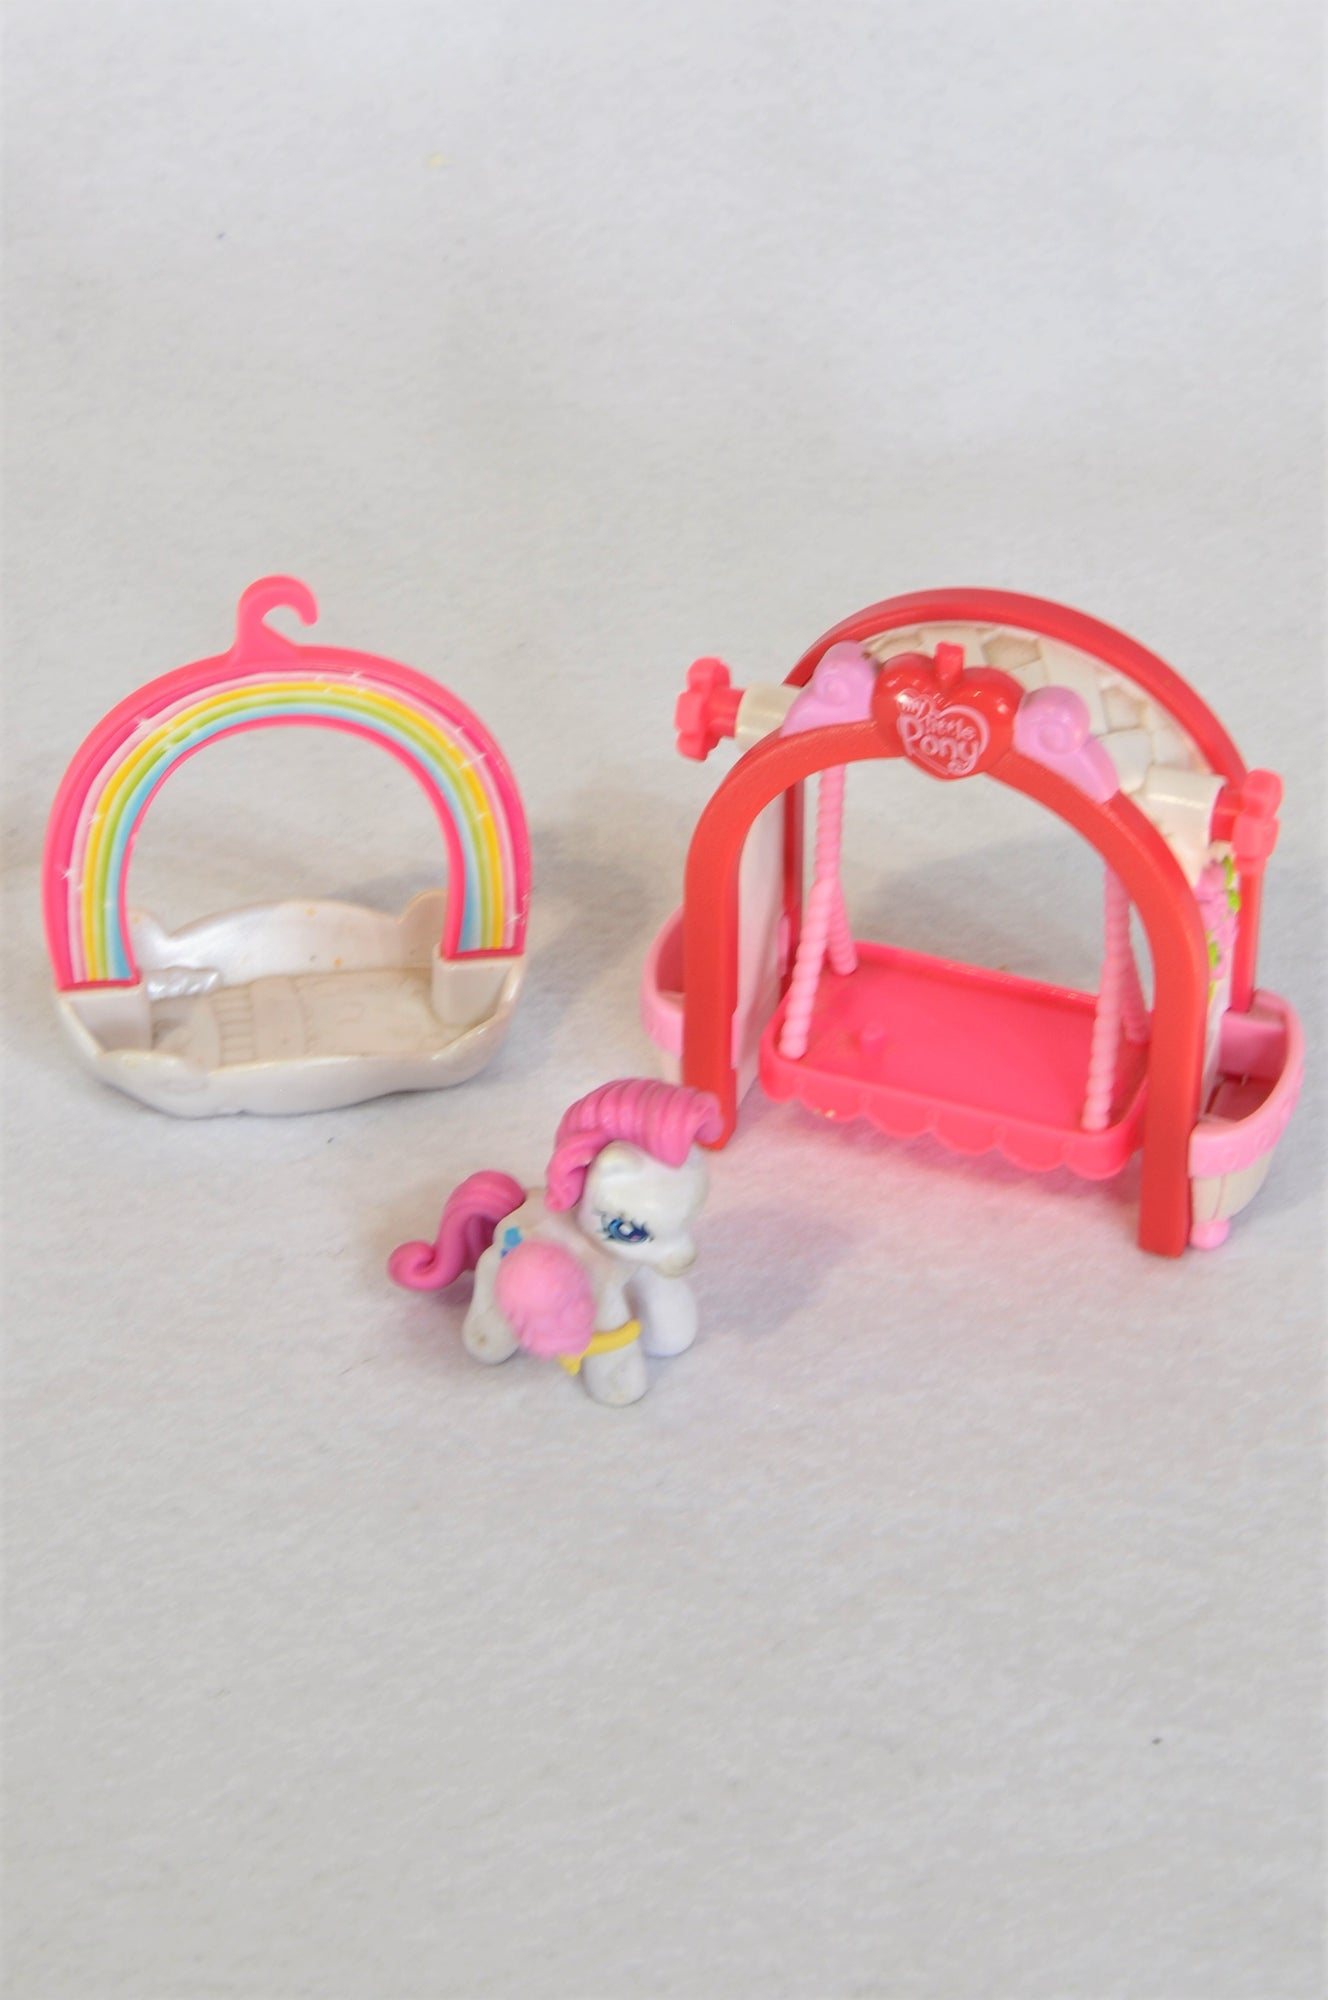 Hasbro My Little Pony Arch Swing , Pony With Ice Cream & Rainbow Arch Bed Toy Girls 3-10 years